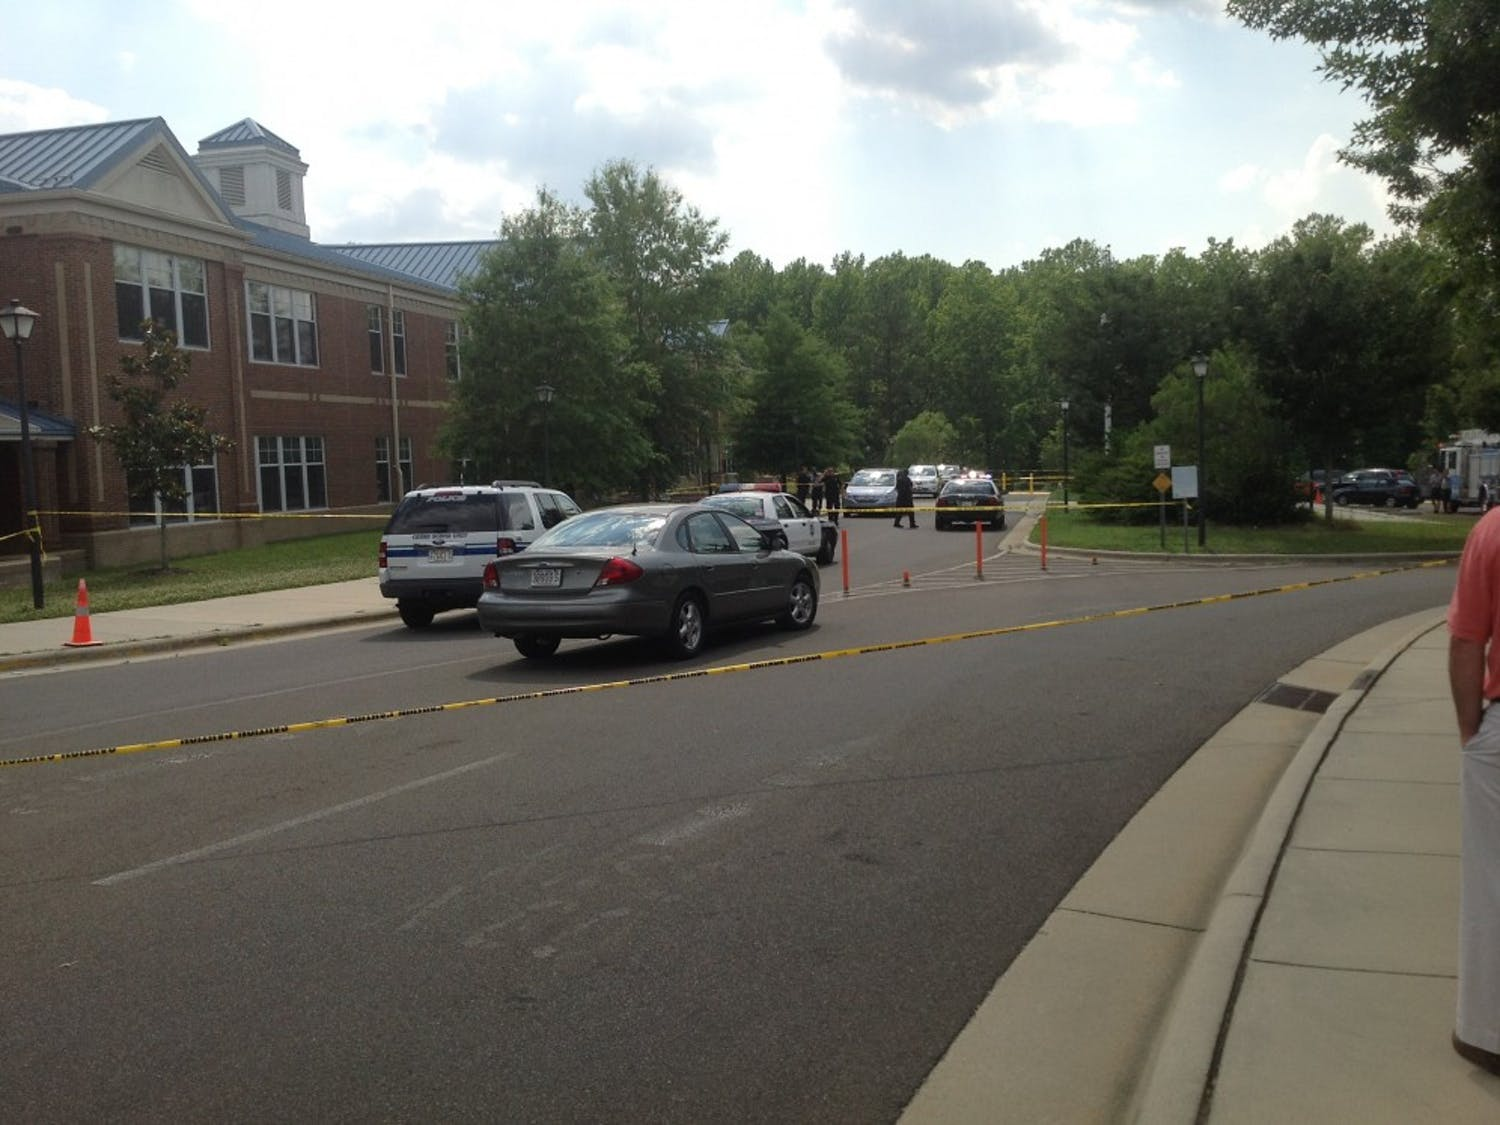 Police at Mary Scroggs Elementary School after a shooting on the afternoon of May 25.